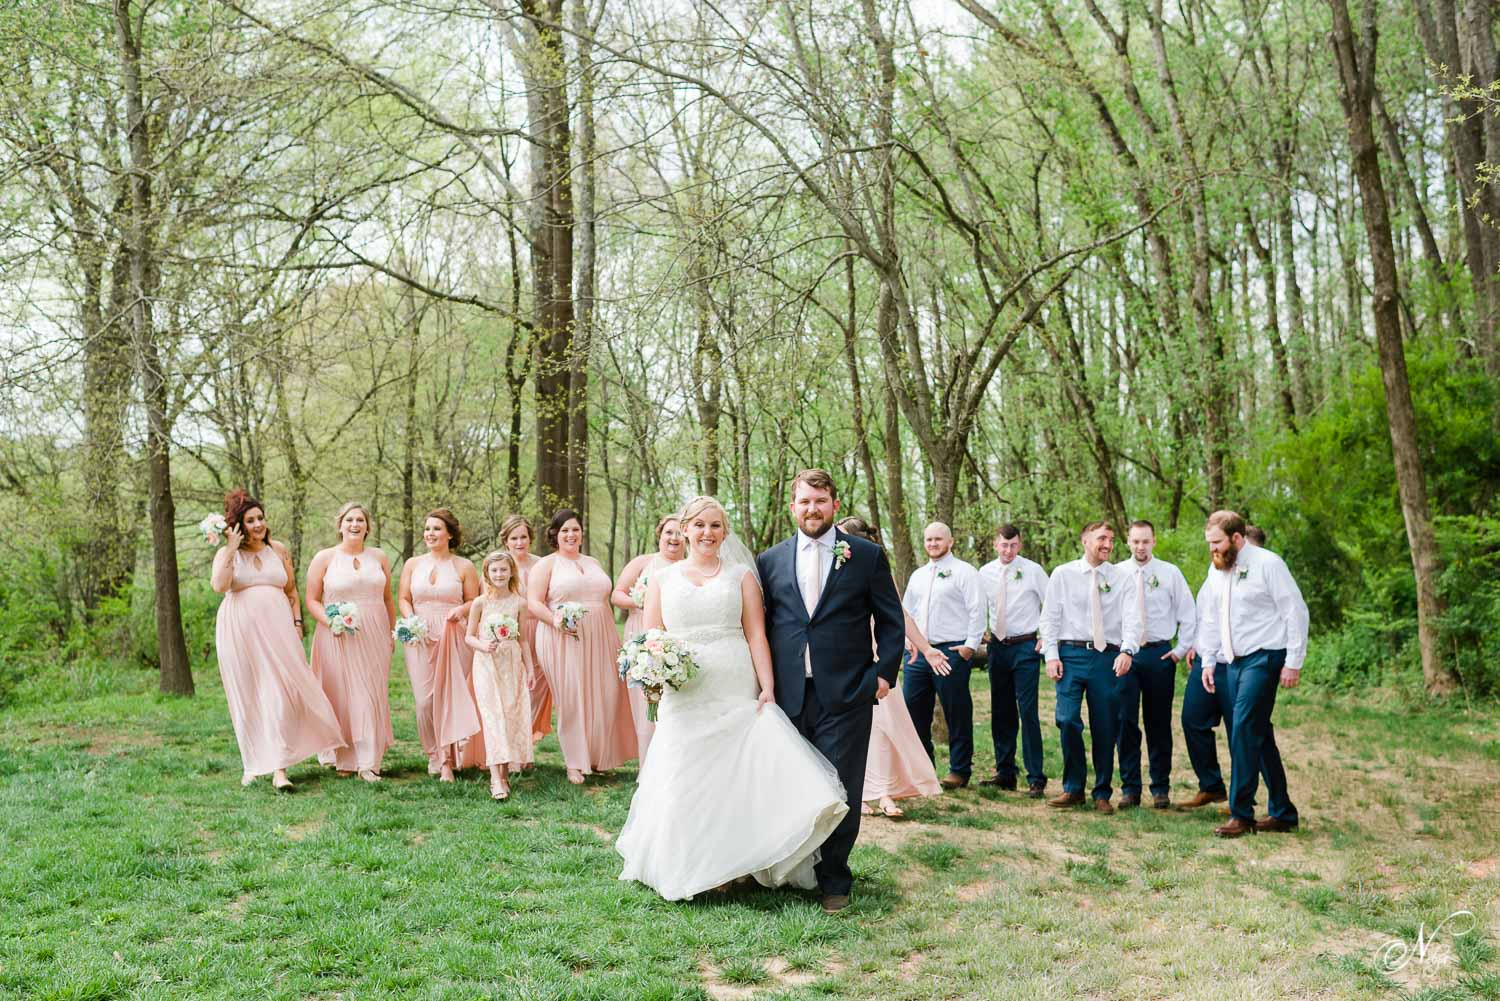 blush and navy wedding party in background with bride and groom in front